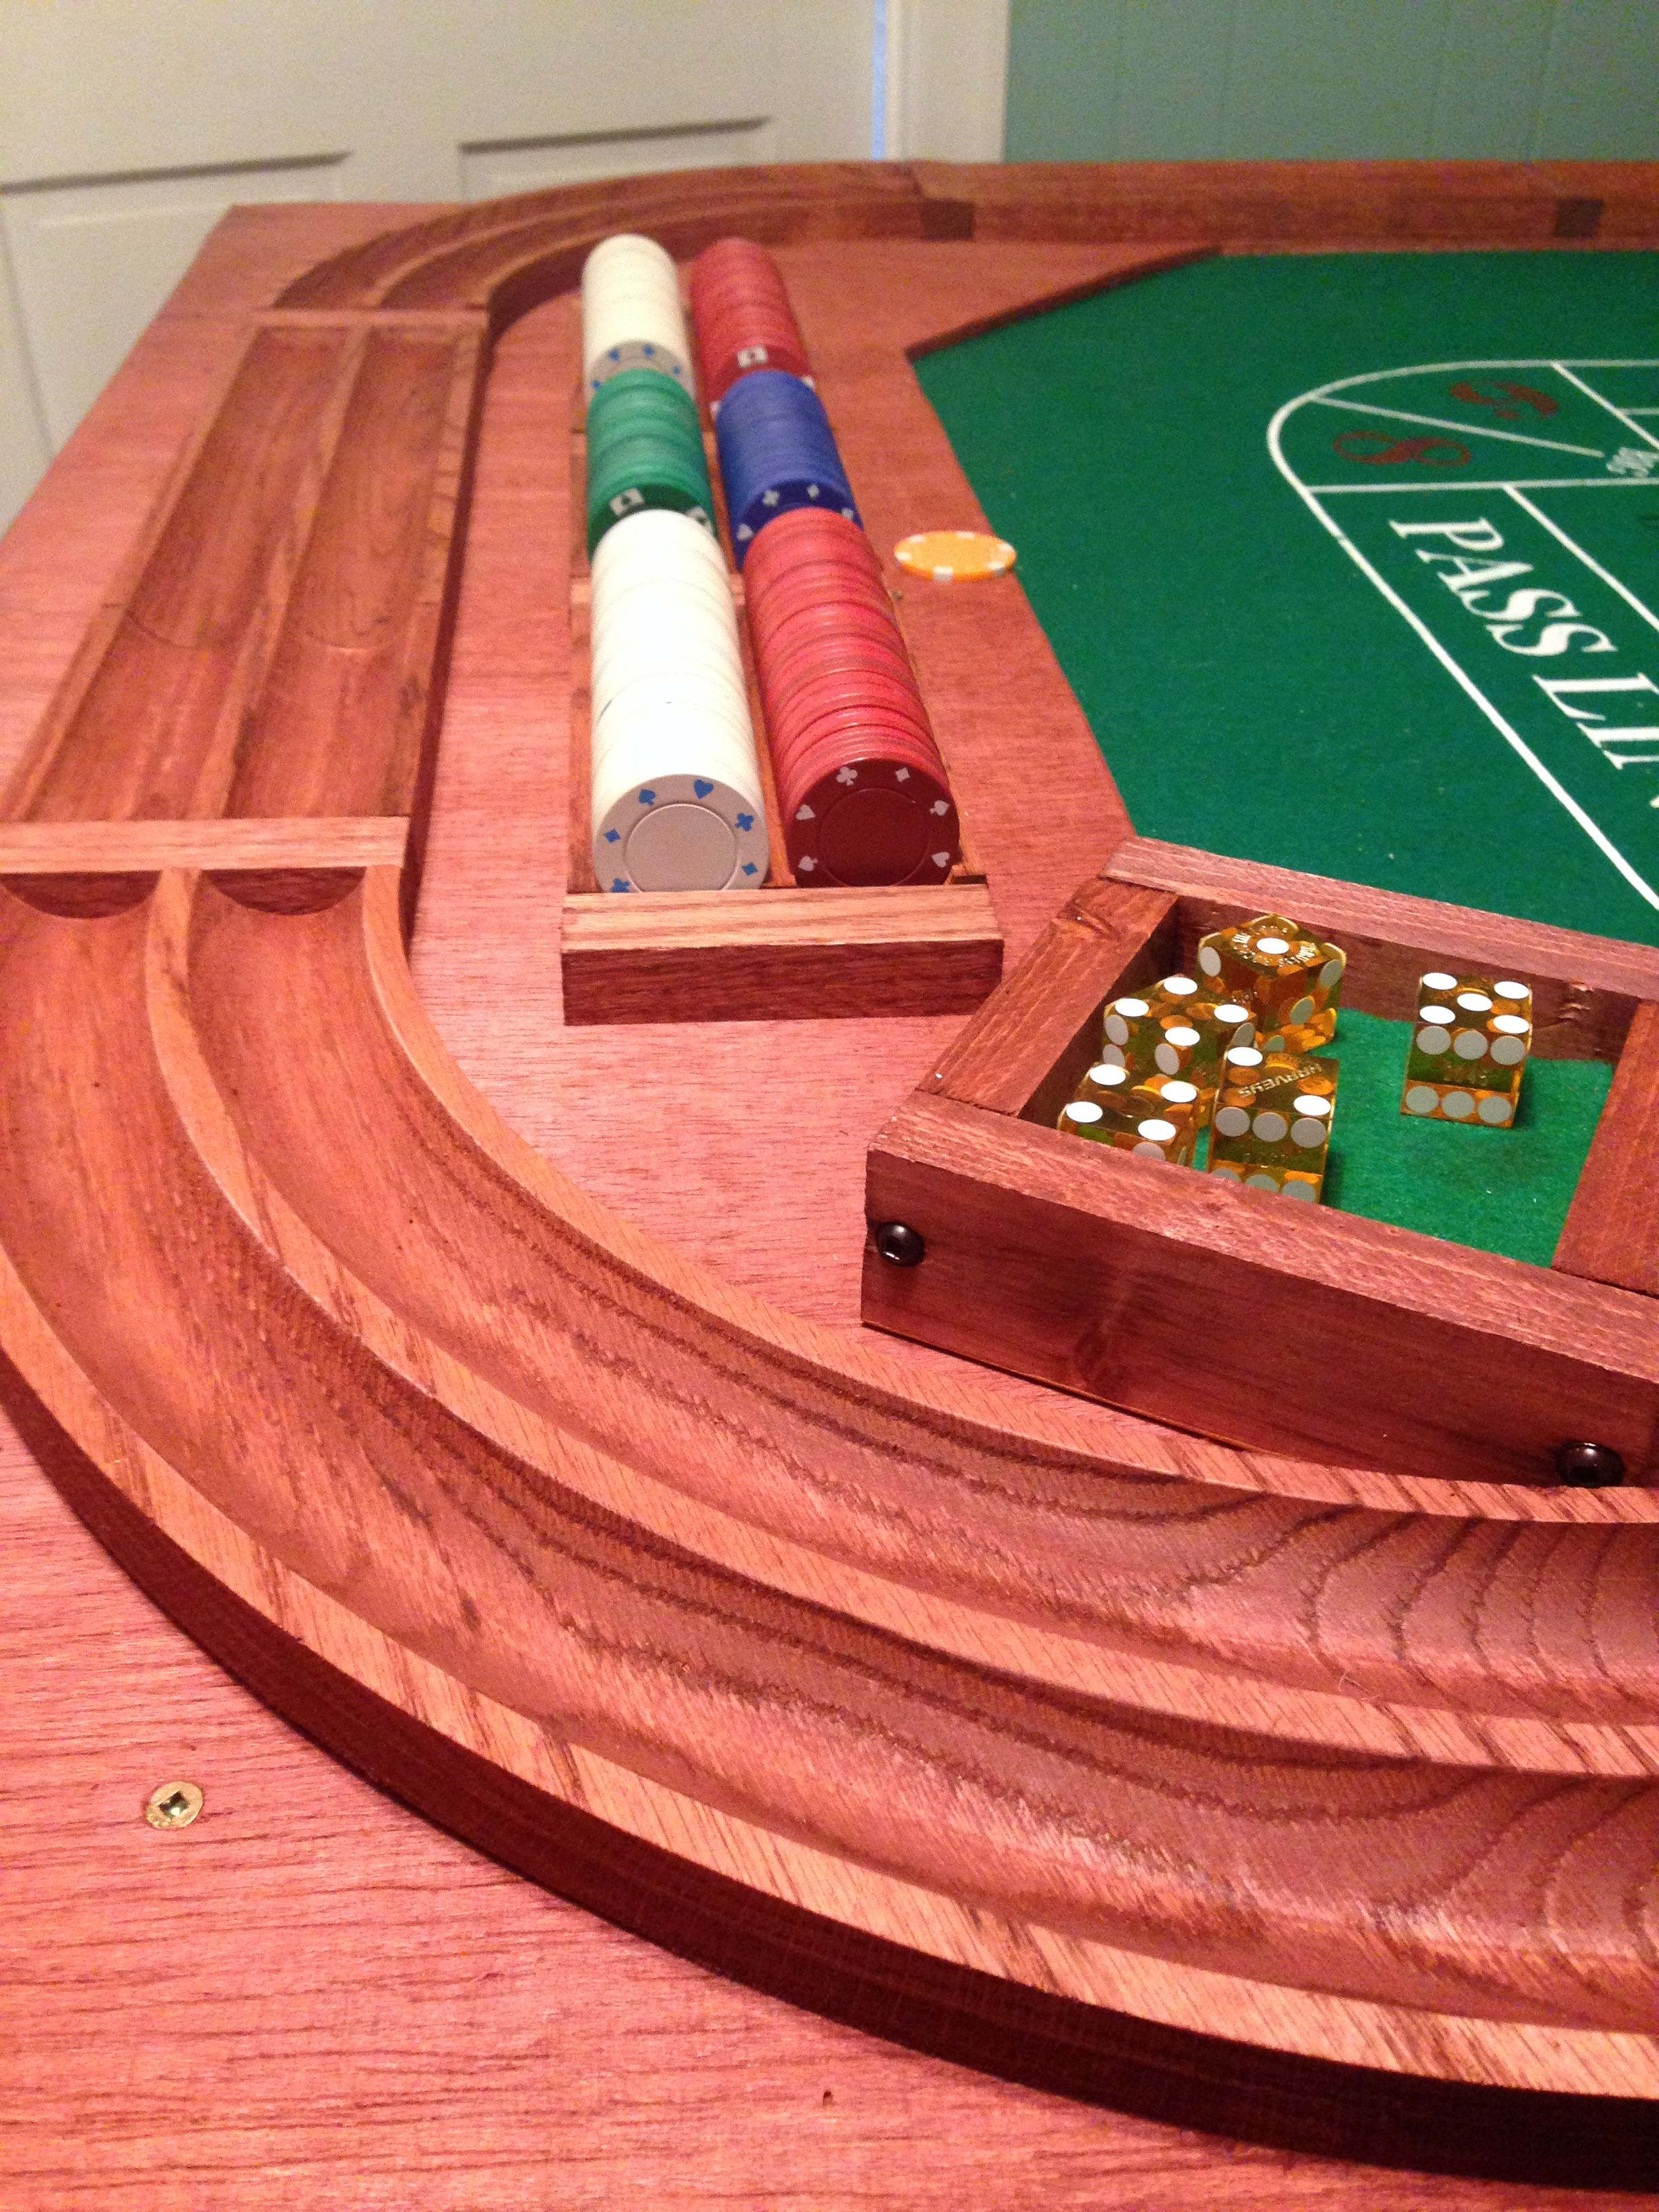 Homemade craps table... Get your game on! Casino table